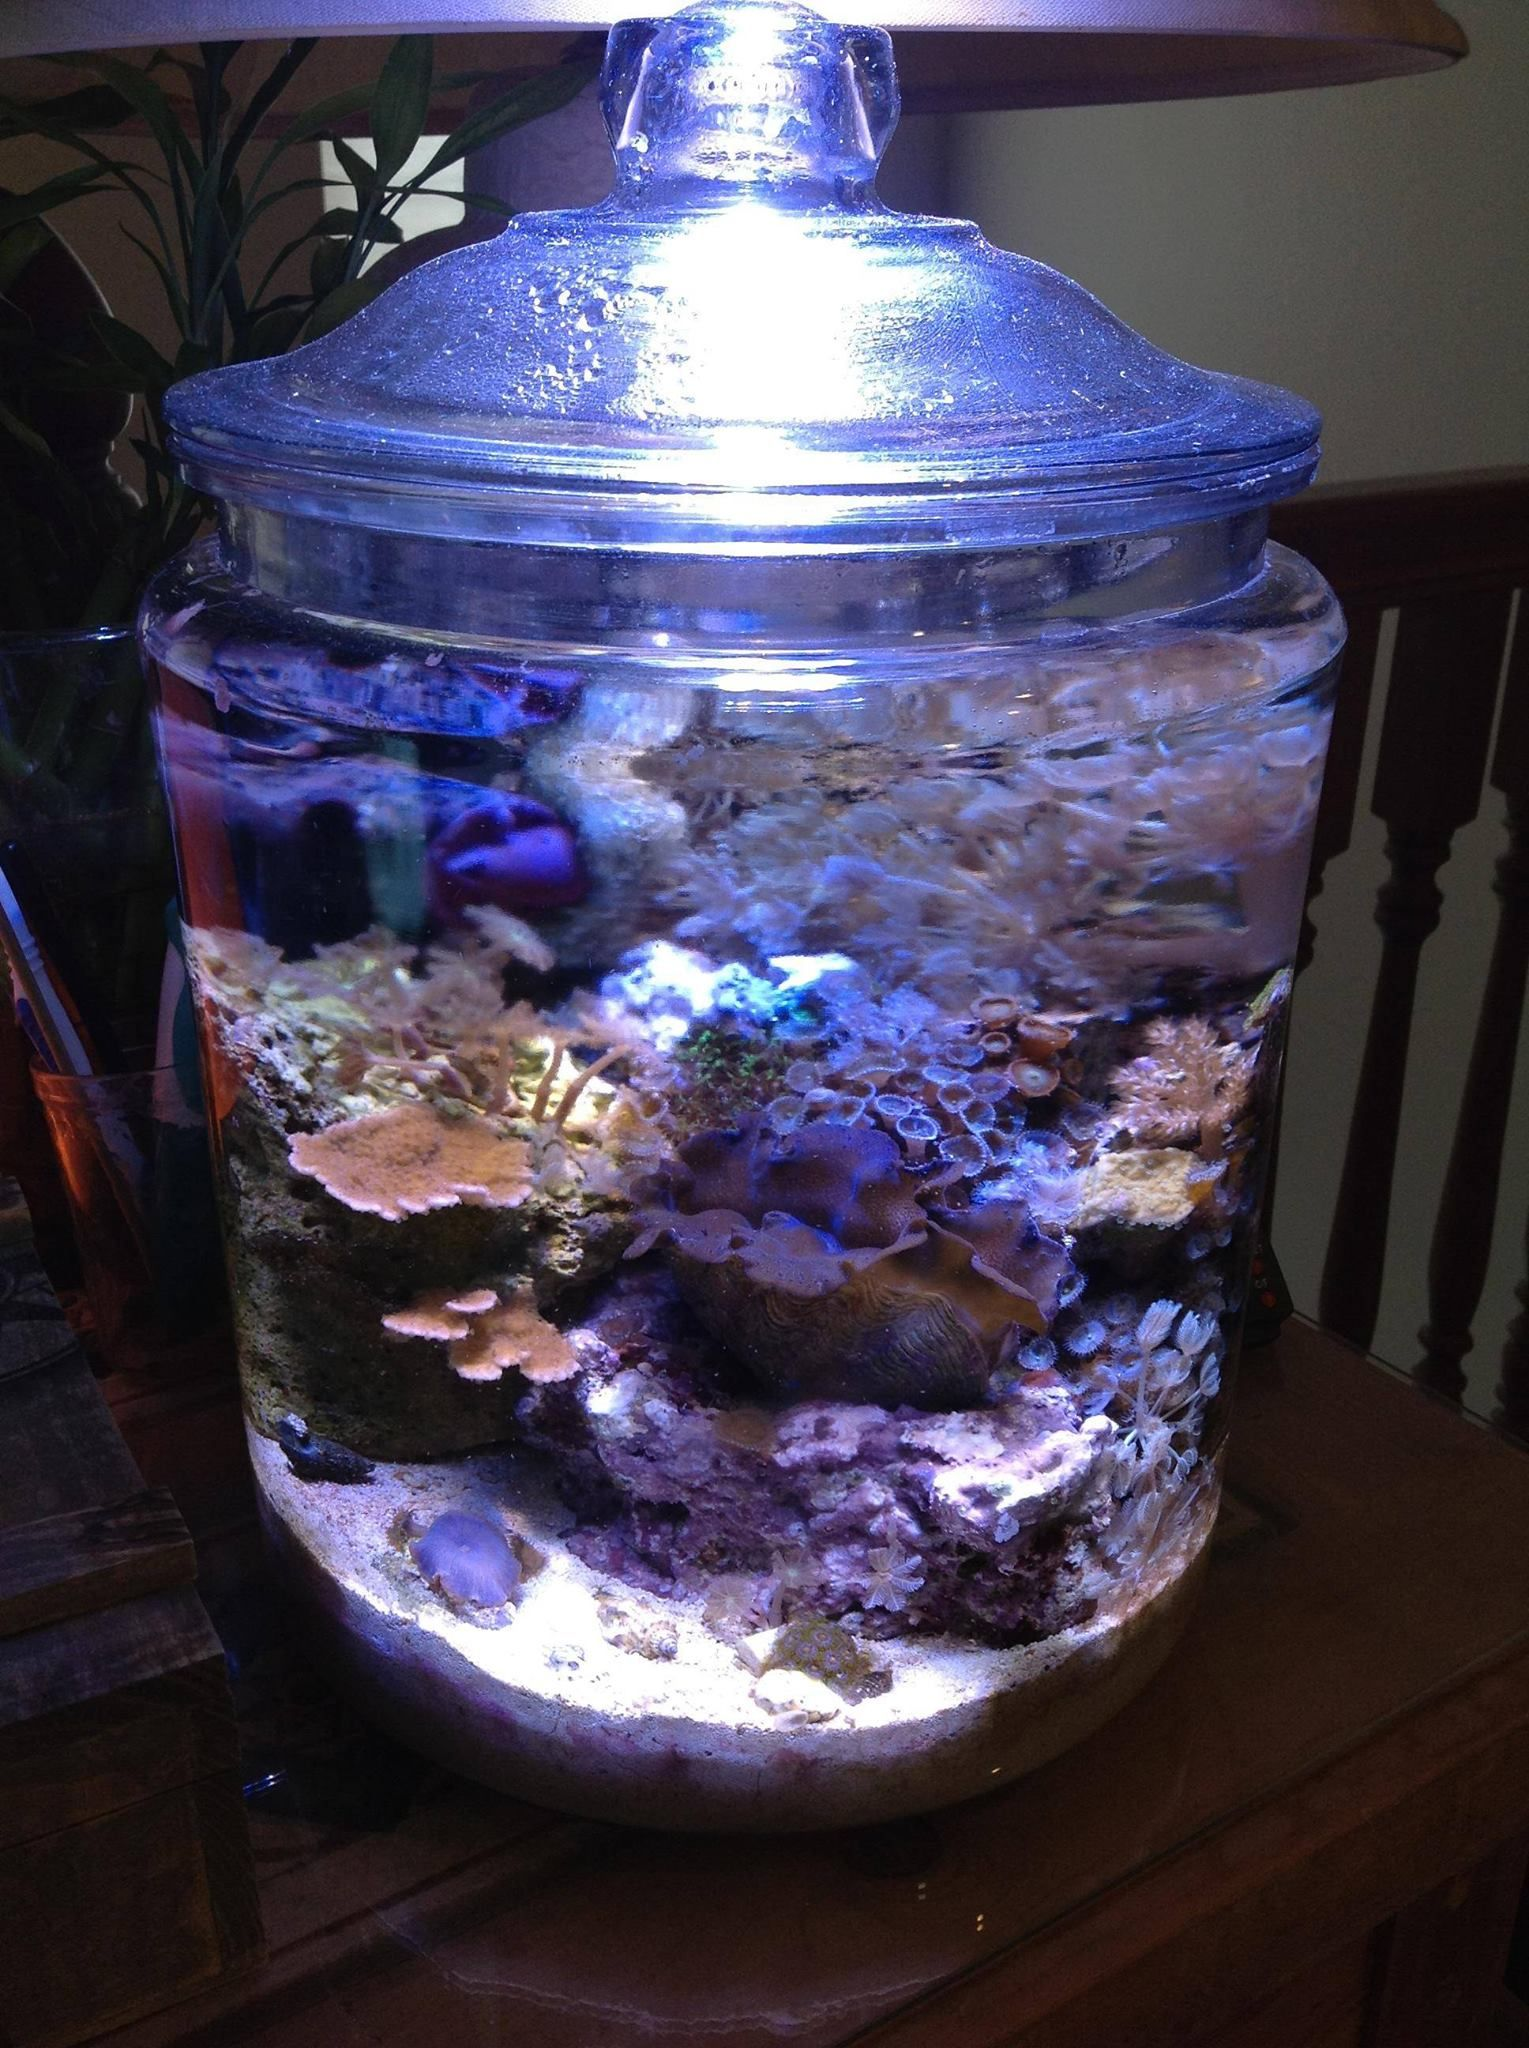 5 months after a coral reef was planted inside a Walmart cookie jar!  <3